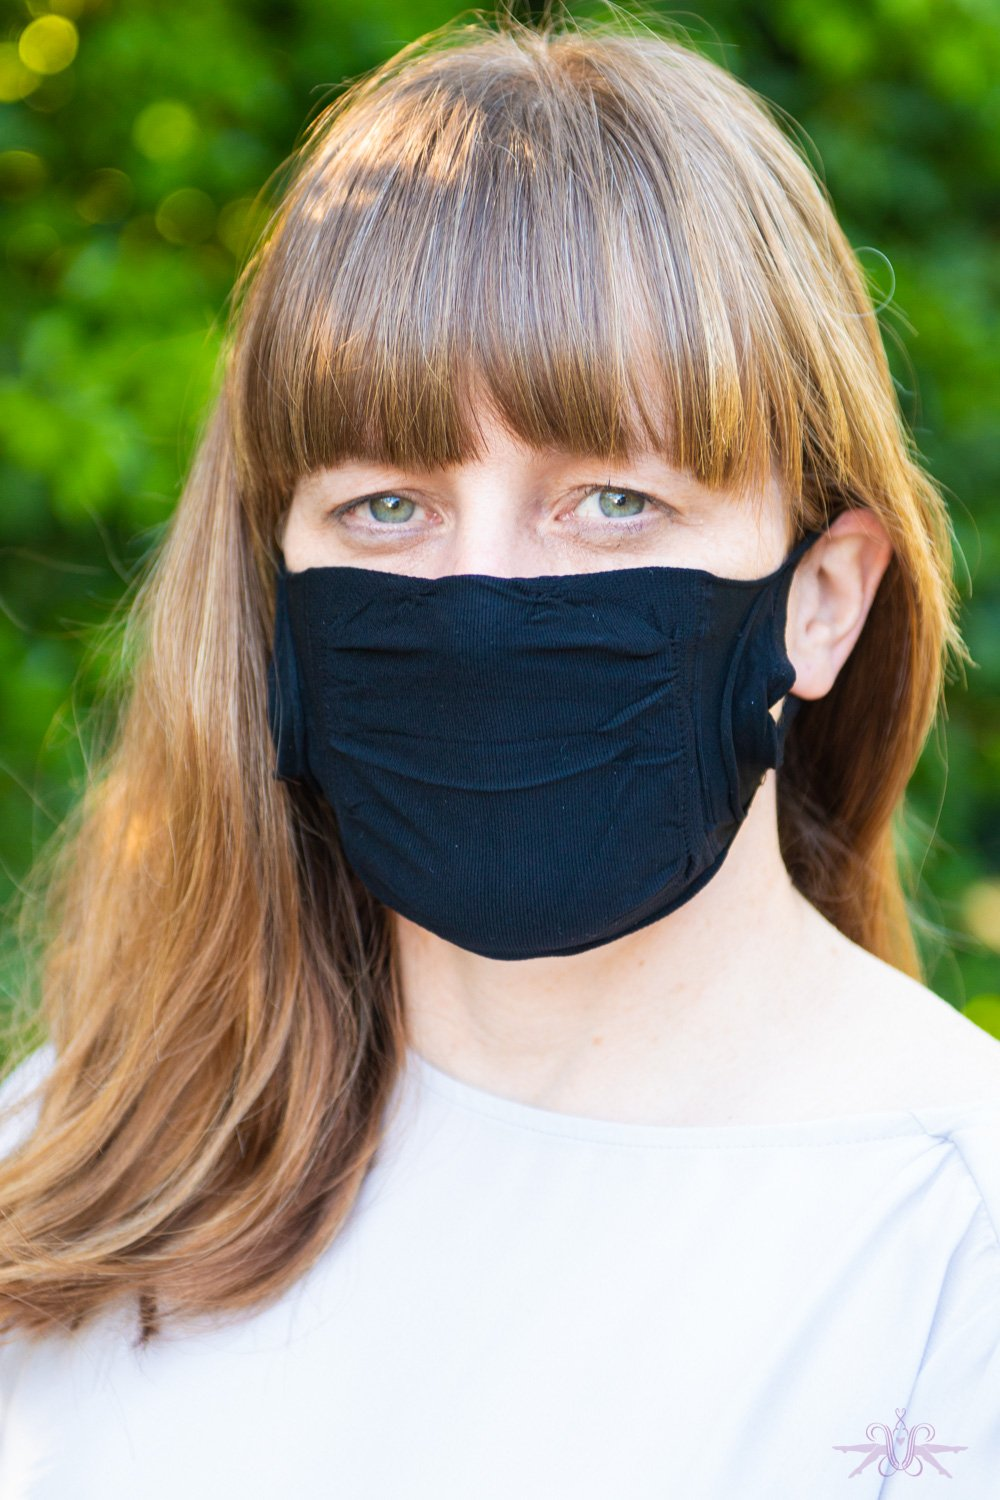 Gabriella Reusable Mask Without Filter